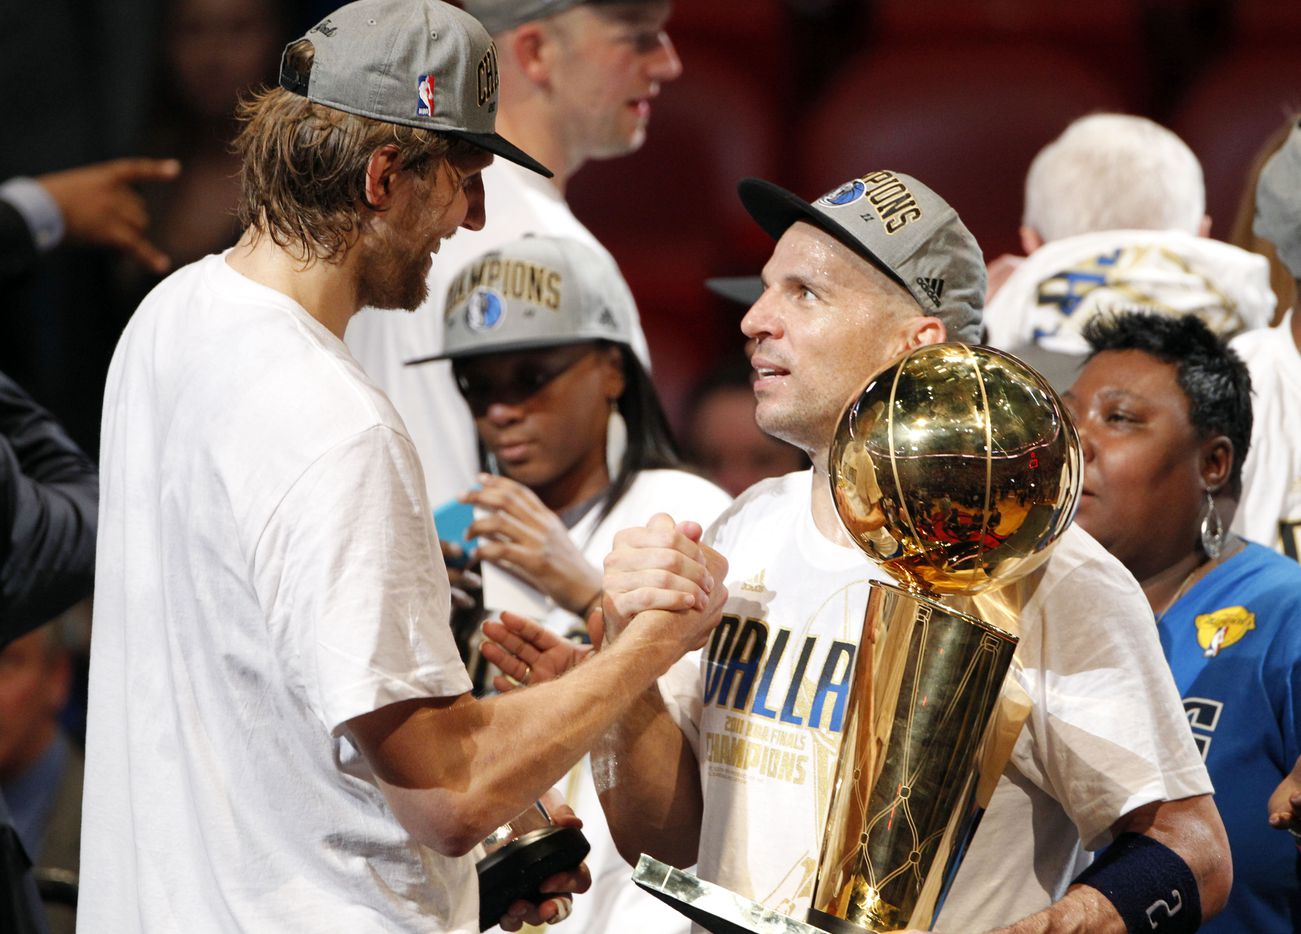 Dallas Mavericks power forward Dirk Nowitzki (41) and Dallas Mavericks point guard Jason Kidd (2) congratulate each other after game six of the NBA Finals between the Miami Heat and the Dallas Mavericks at the American Airlines Arena in Miami, Florida, June 12, 2011. The Mavericks won 105-95 to take the title. (Vernon Bryant/The Dallas Morning News) Kidd is holding the Larry O'Brien NBA Championship trophy